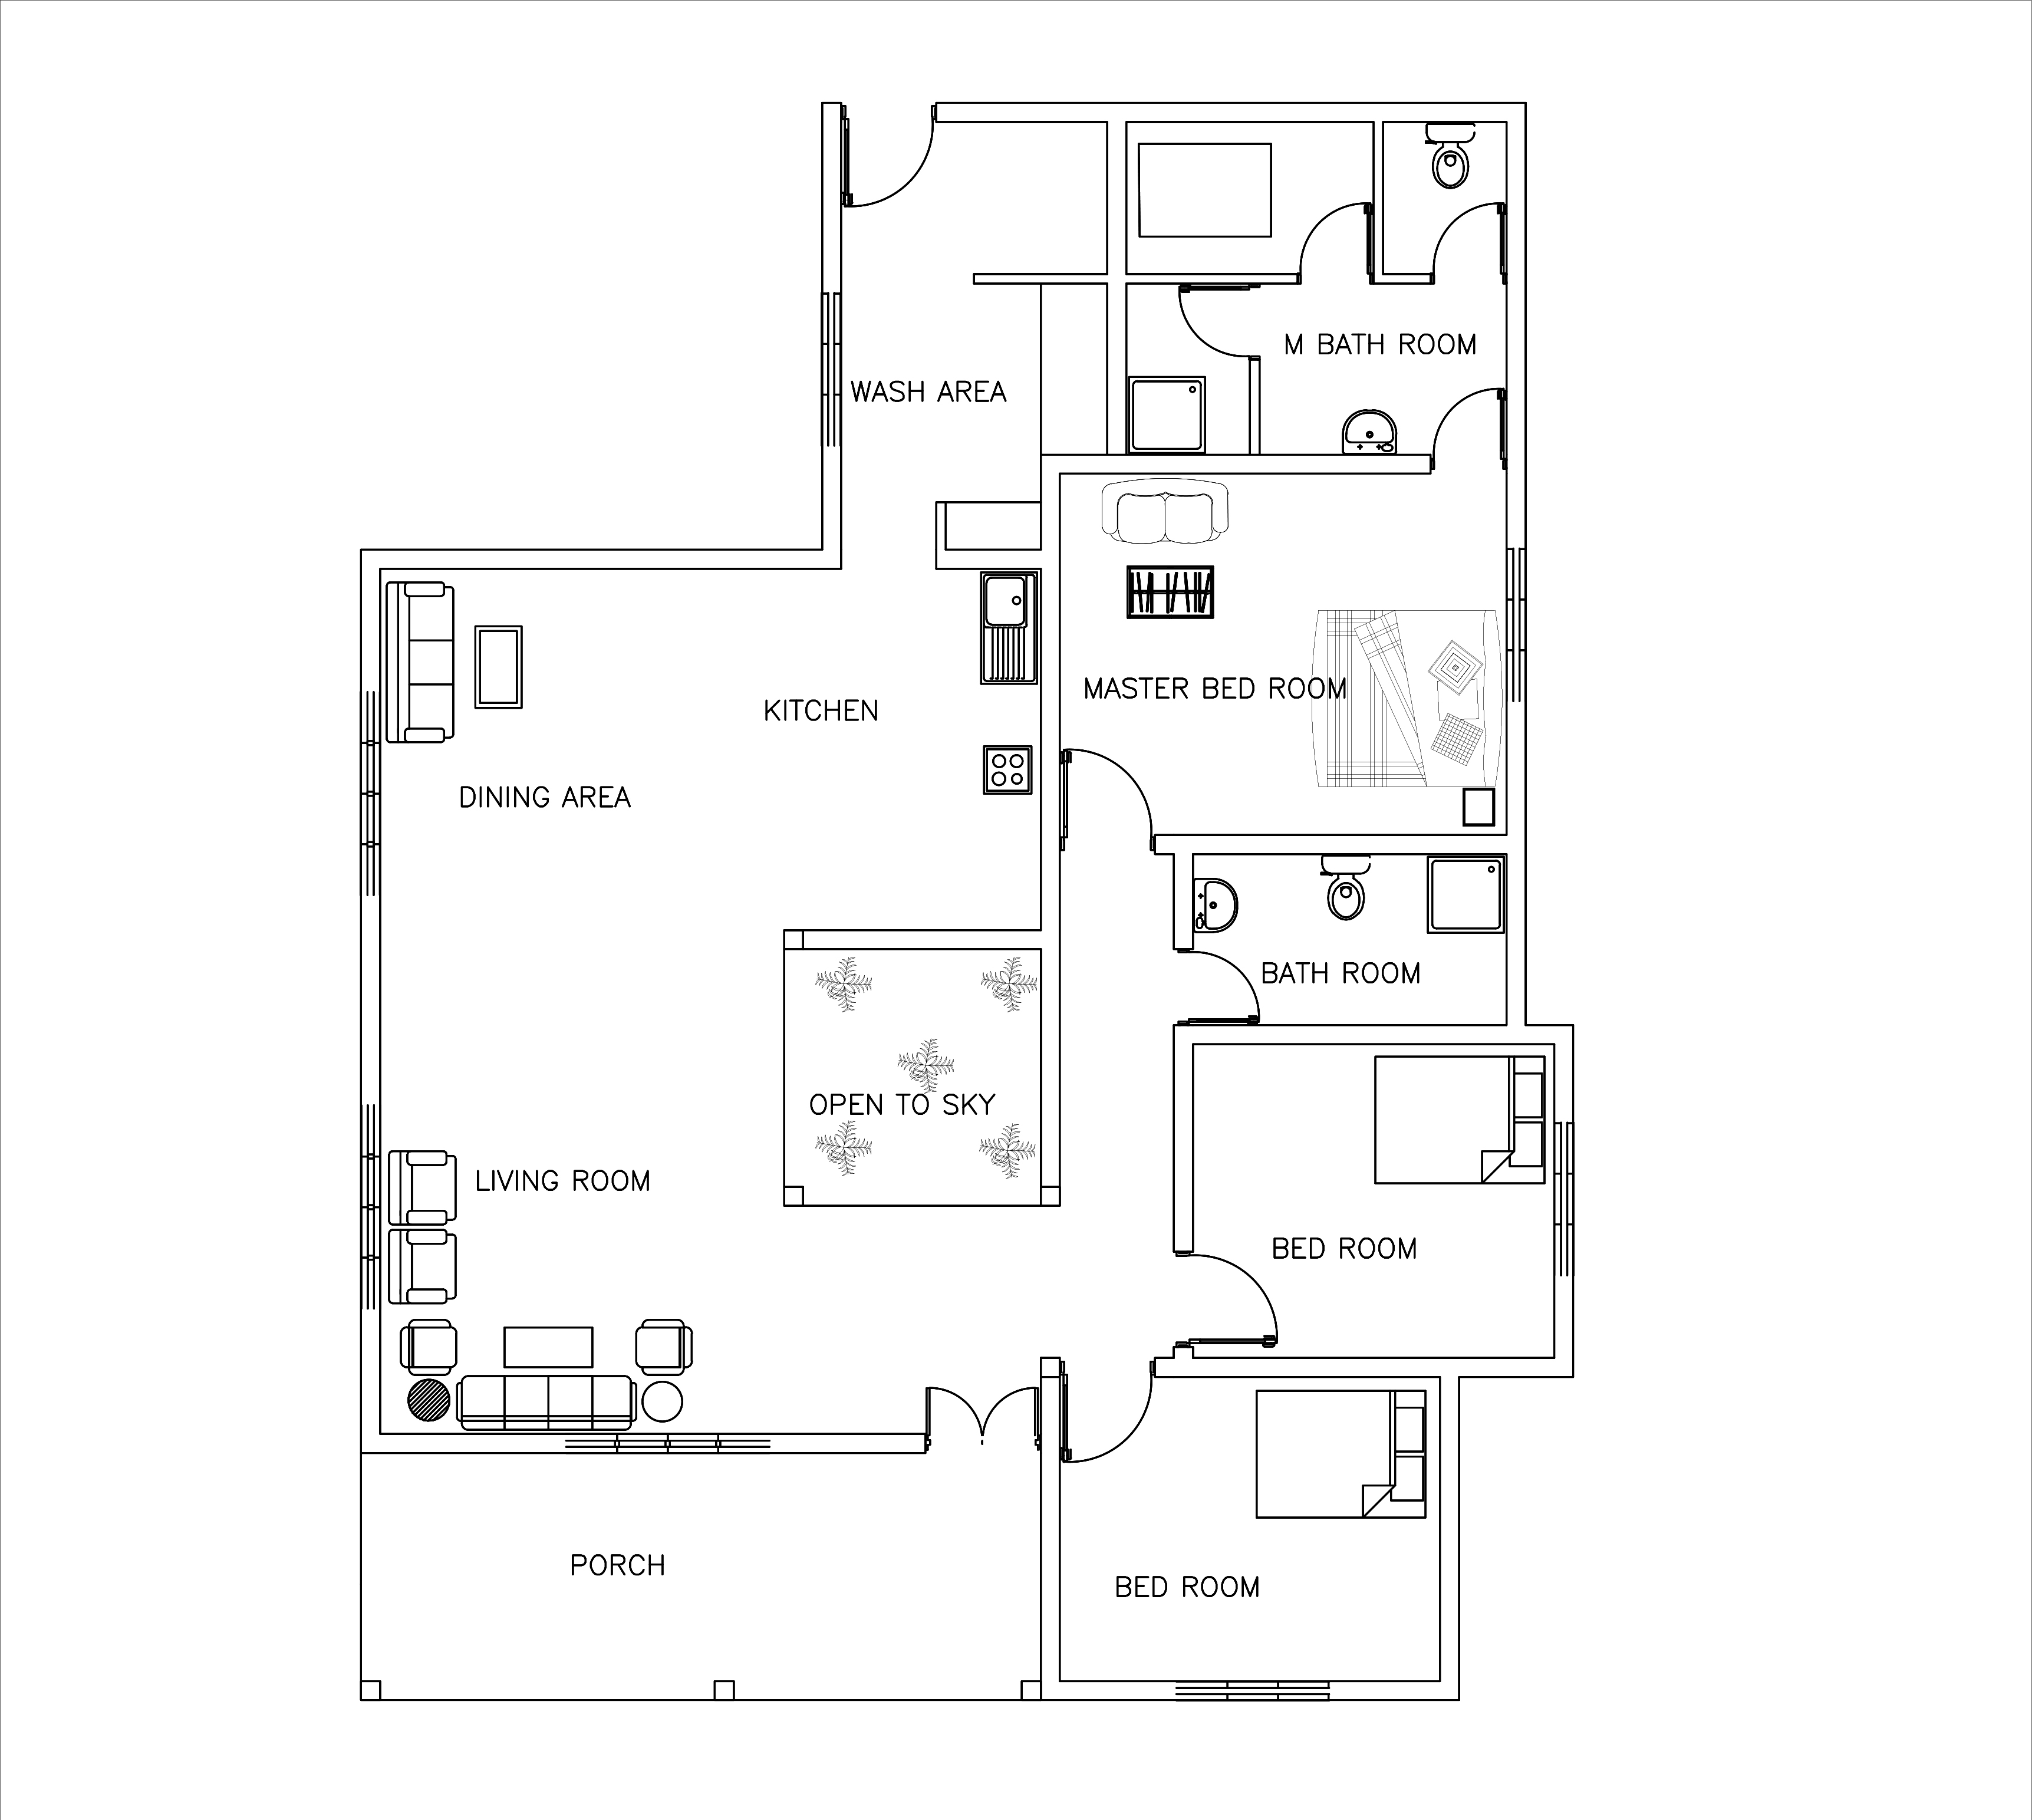 http://www.dwgnet.com/wp-content/uploads/2016/08/three-bed-room-house-plan.jpg